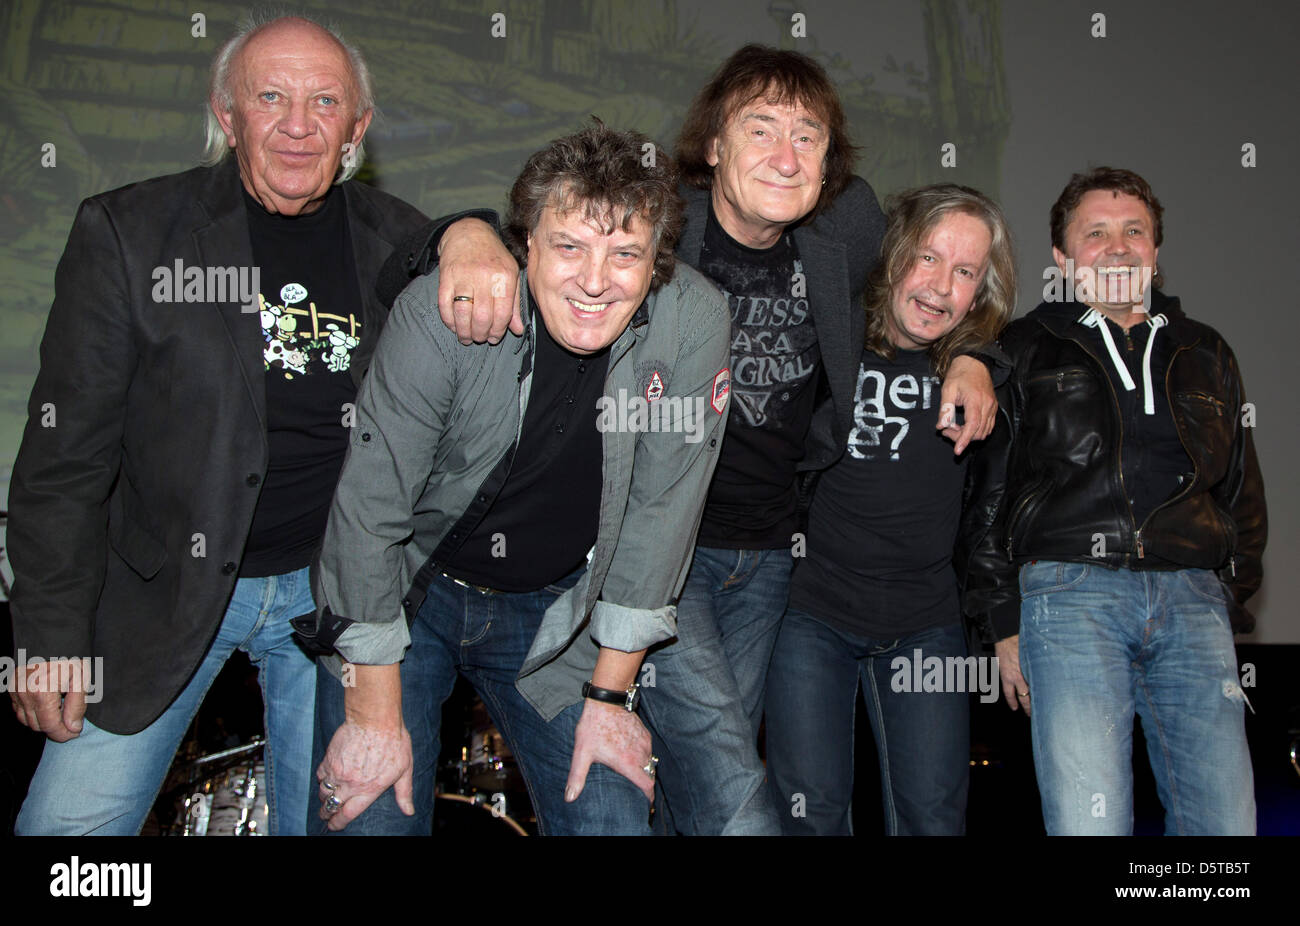 The German rock band Puhdys with Peter Meyer (L-R), Dieter